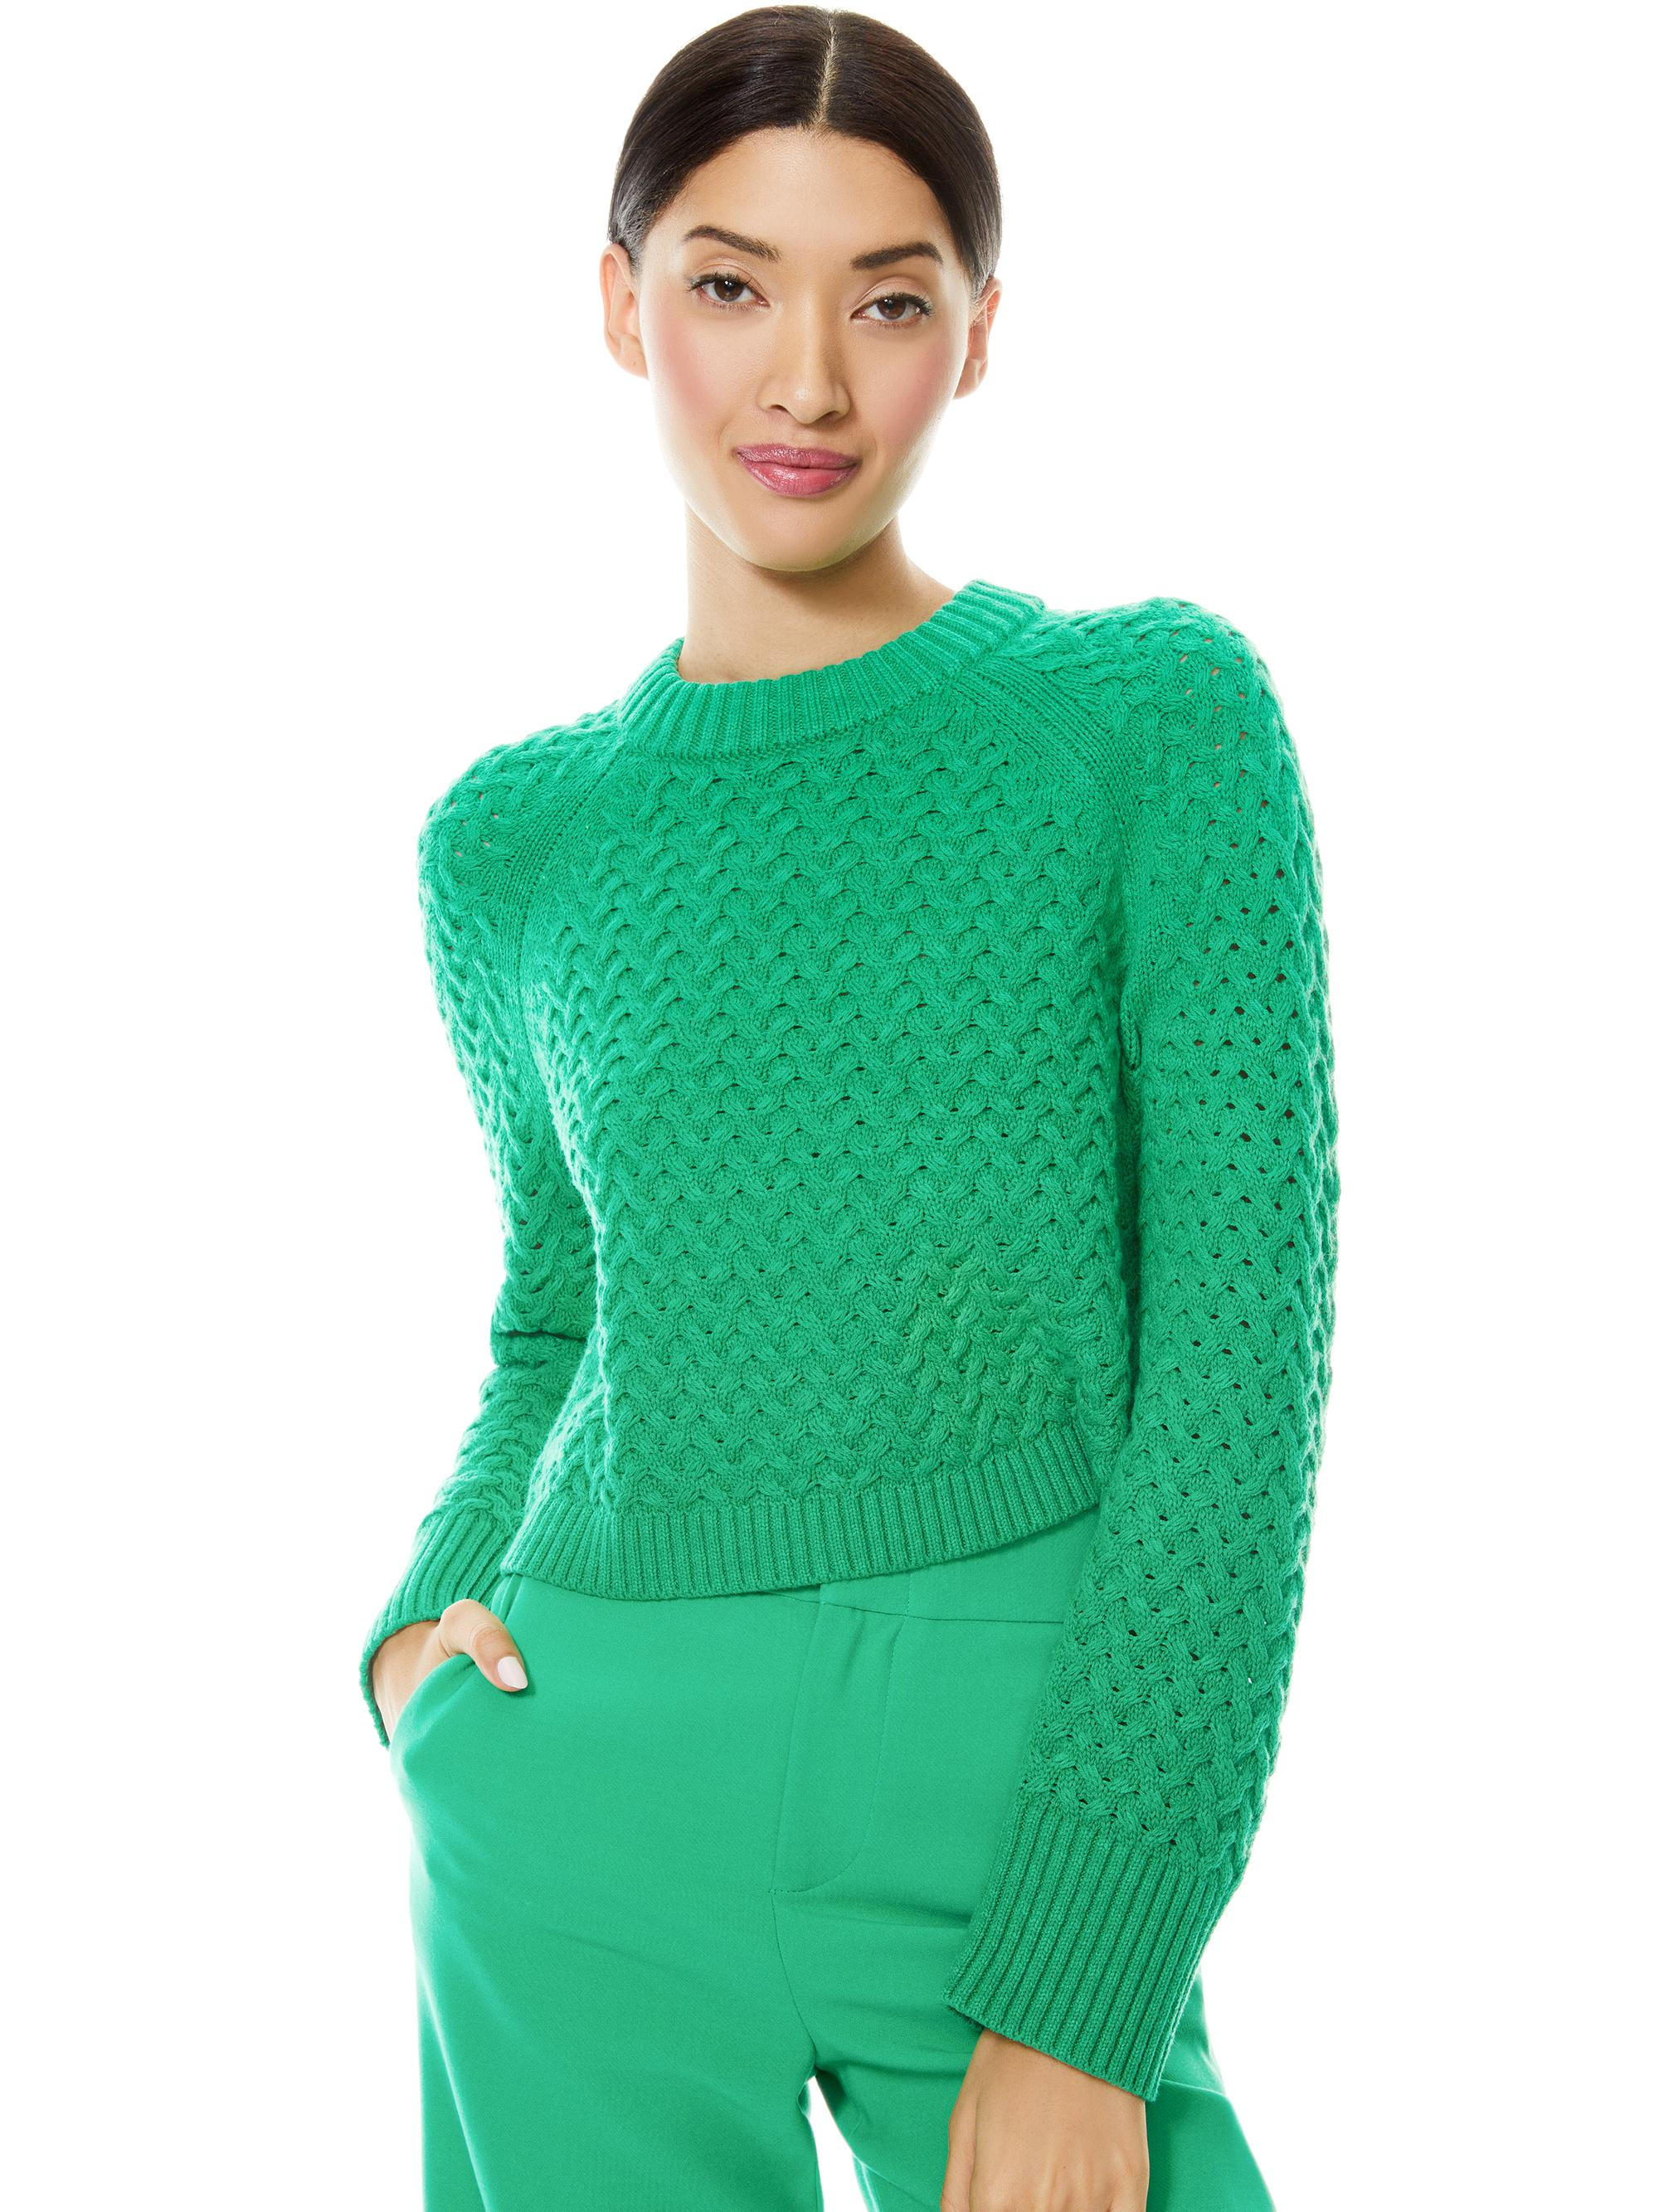 LETA CROPPED PULLOVER 0